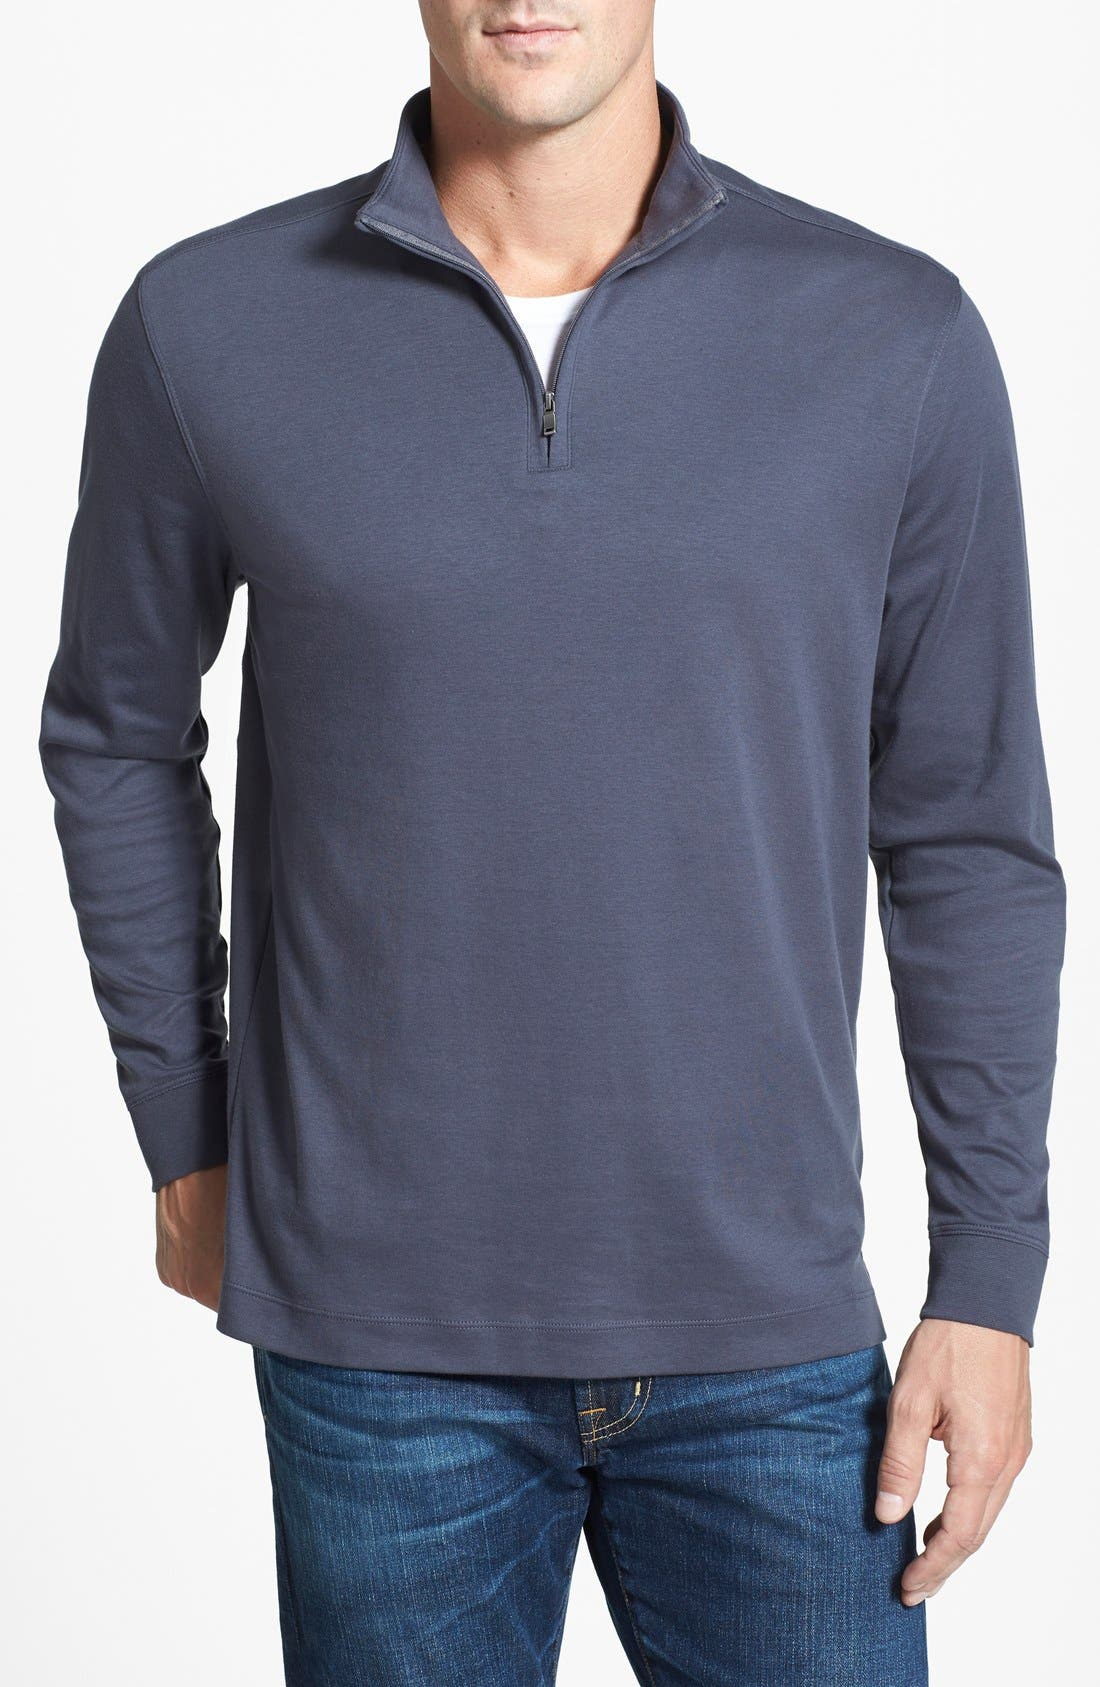 Cutter & Buck 'Belfair' Quarter Zip Pullover (Big & Tall)